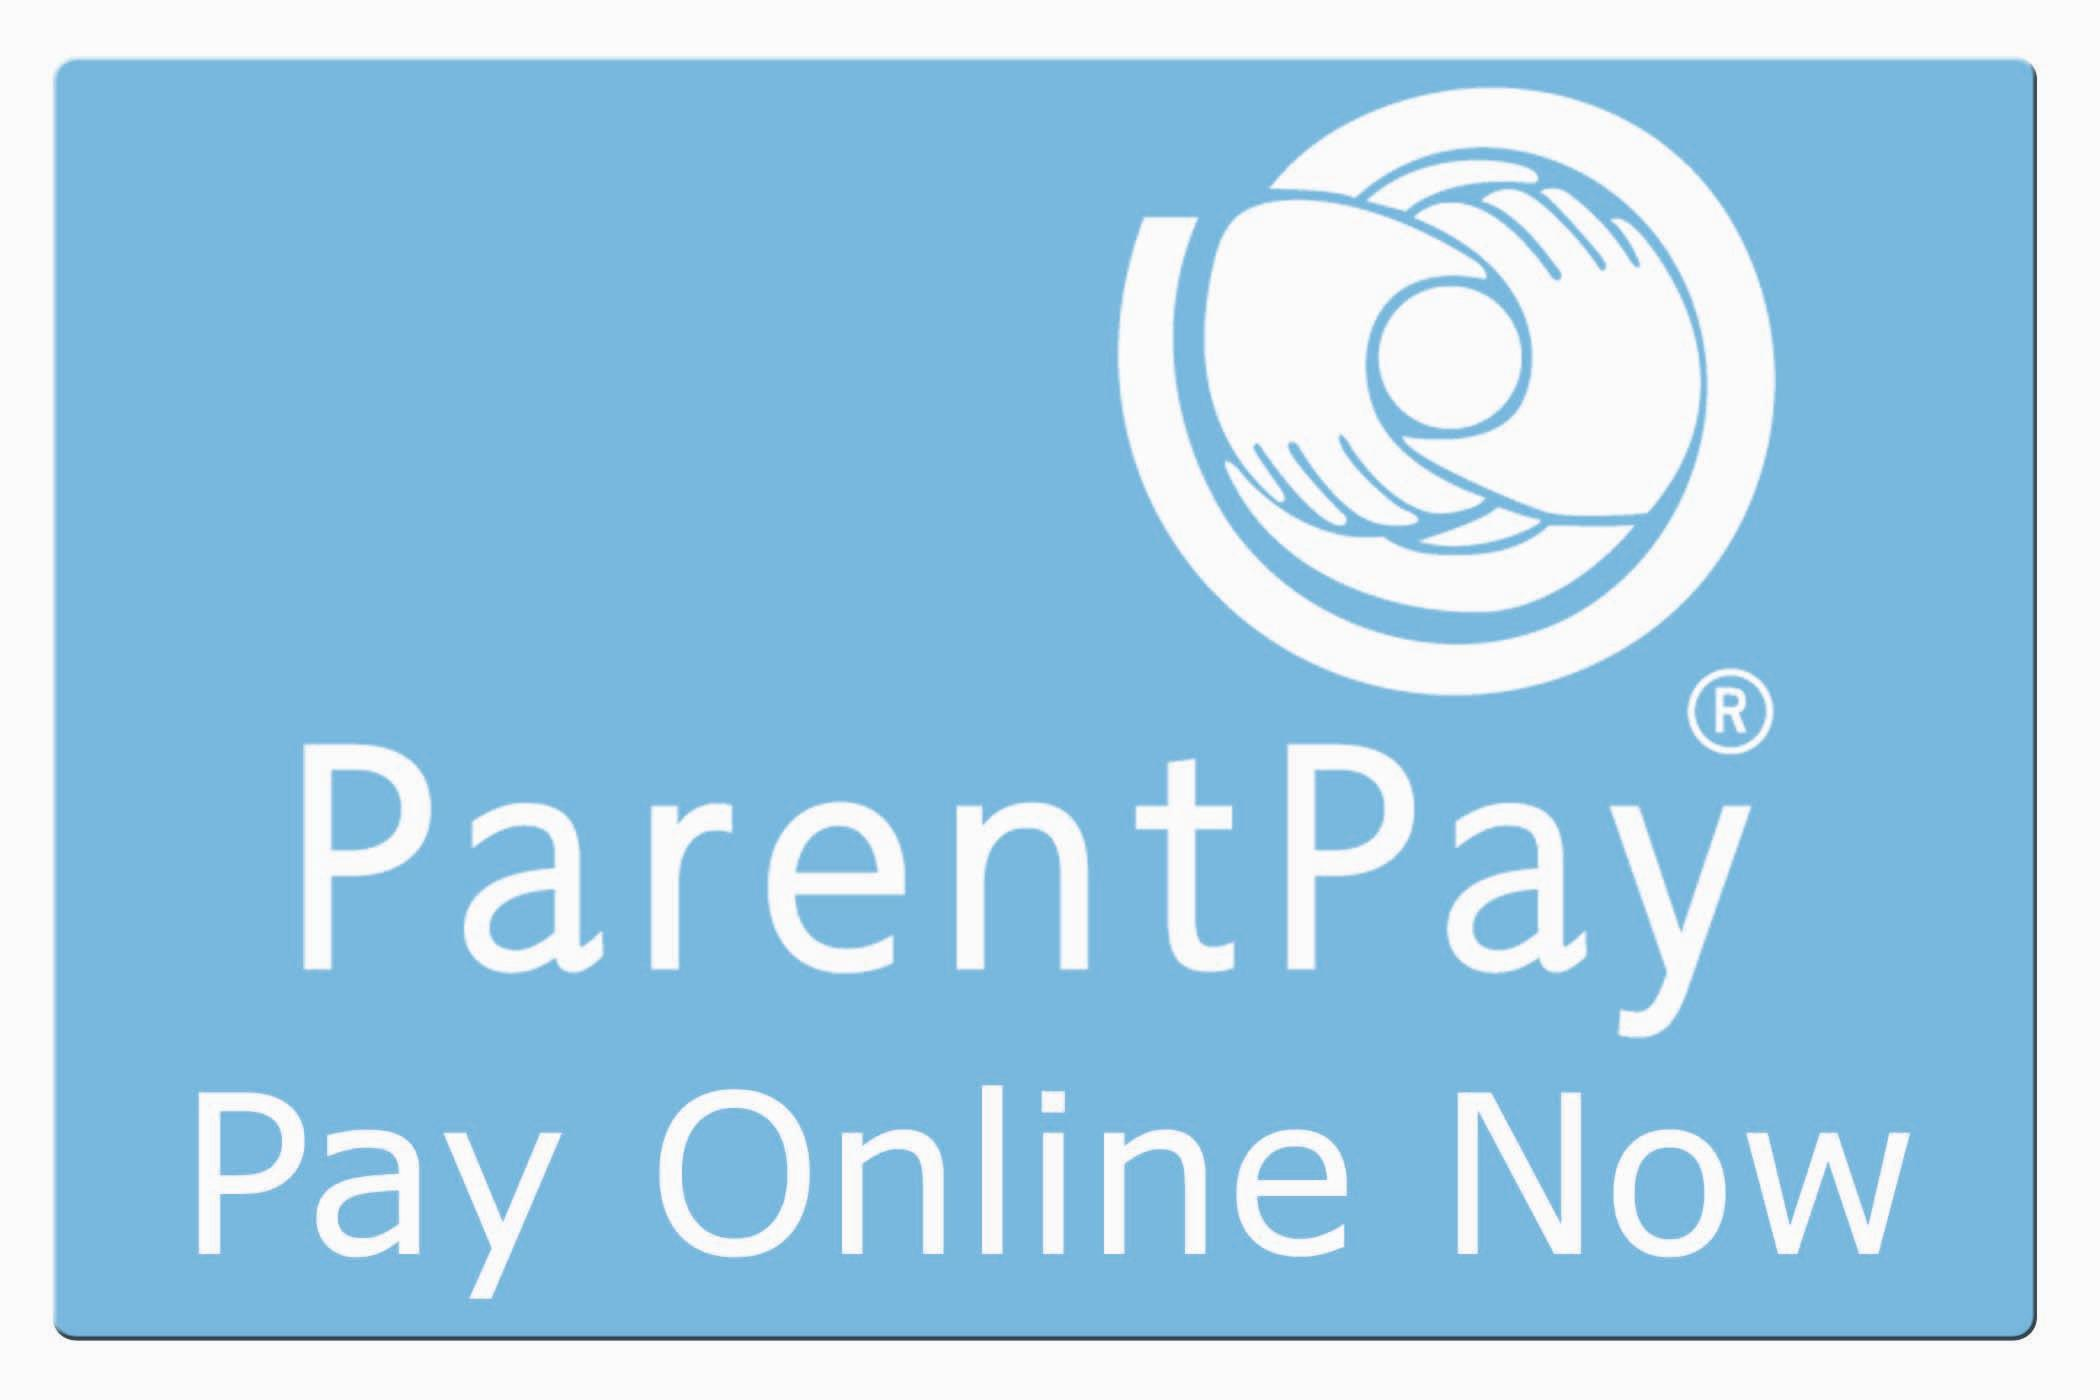 Click on the image to go to ParentPay page to login